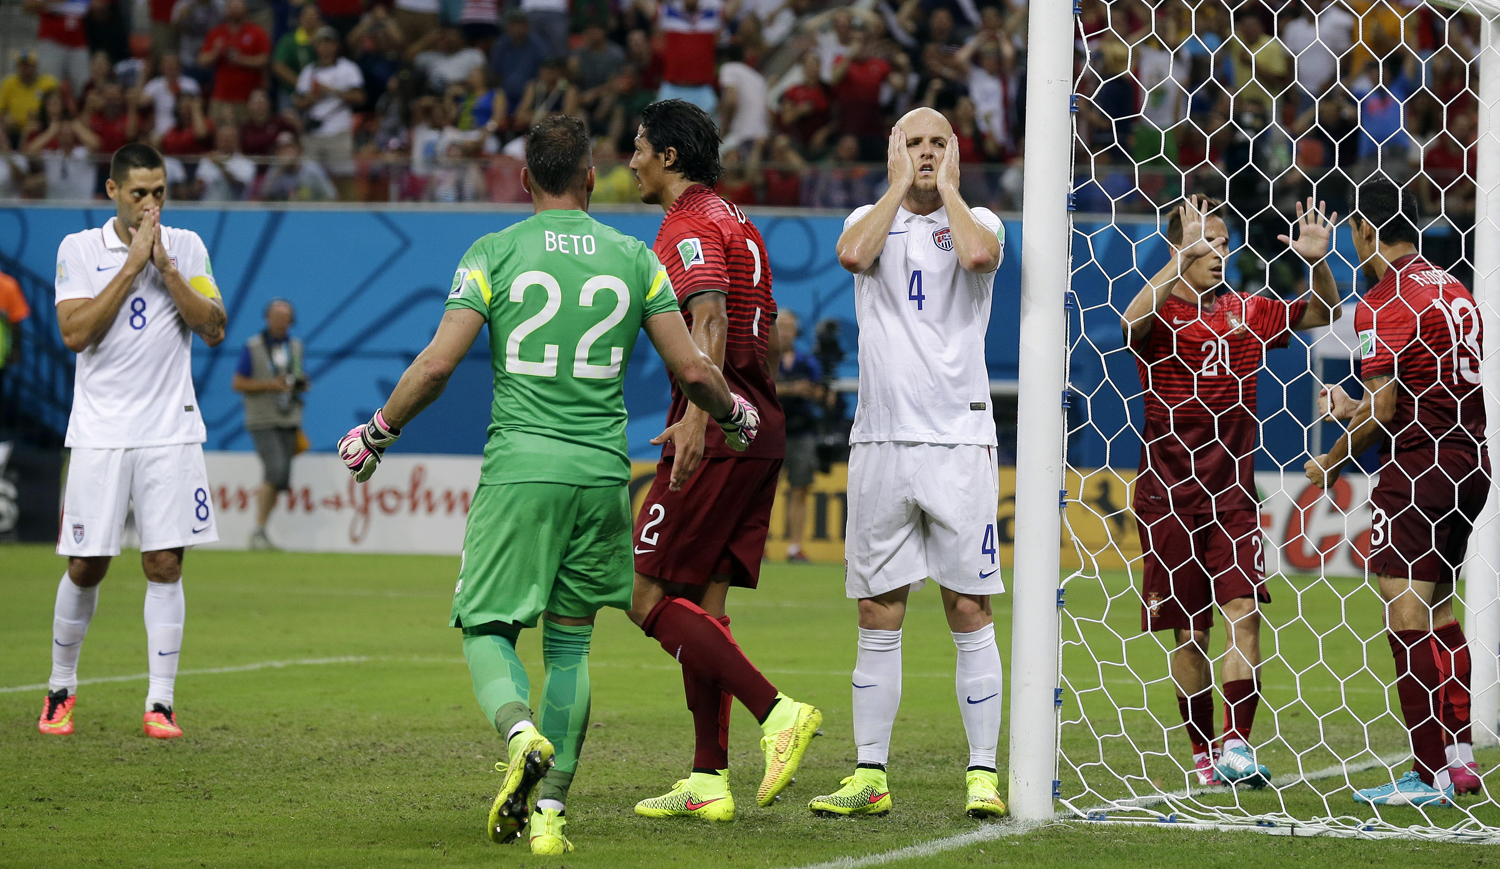 United States' Michael Bradley reacts after his shot on an open goal was blocked by Portugal's Ricardo Costa during the group G World Cup soccer match between the USA and Portugal in Manaus, Brazil on  June 22, 2014.